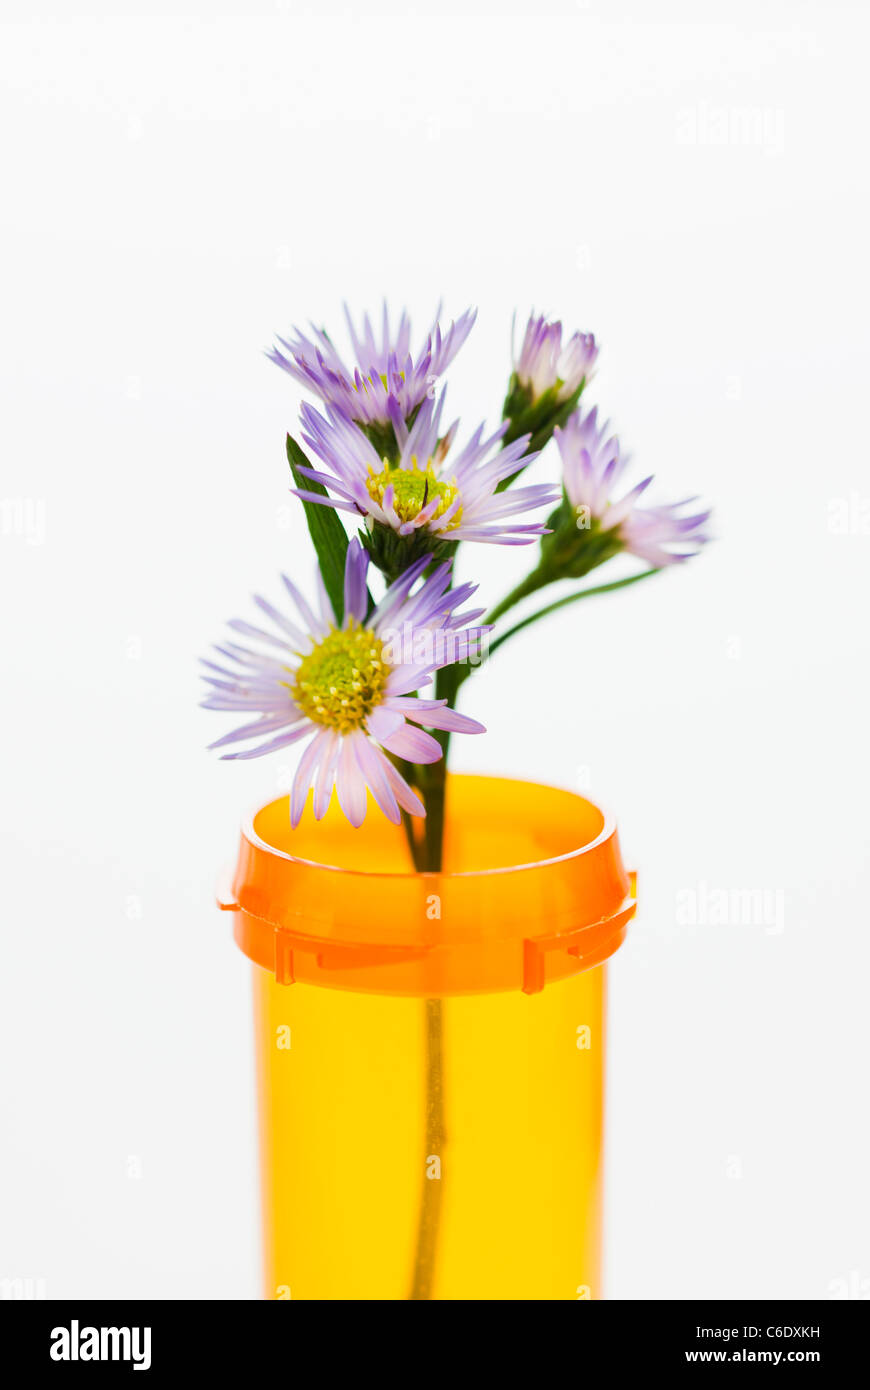 Herbal medicine in pill bottle - Stock Image